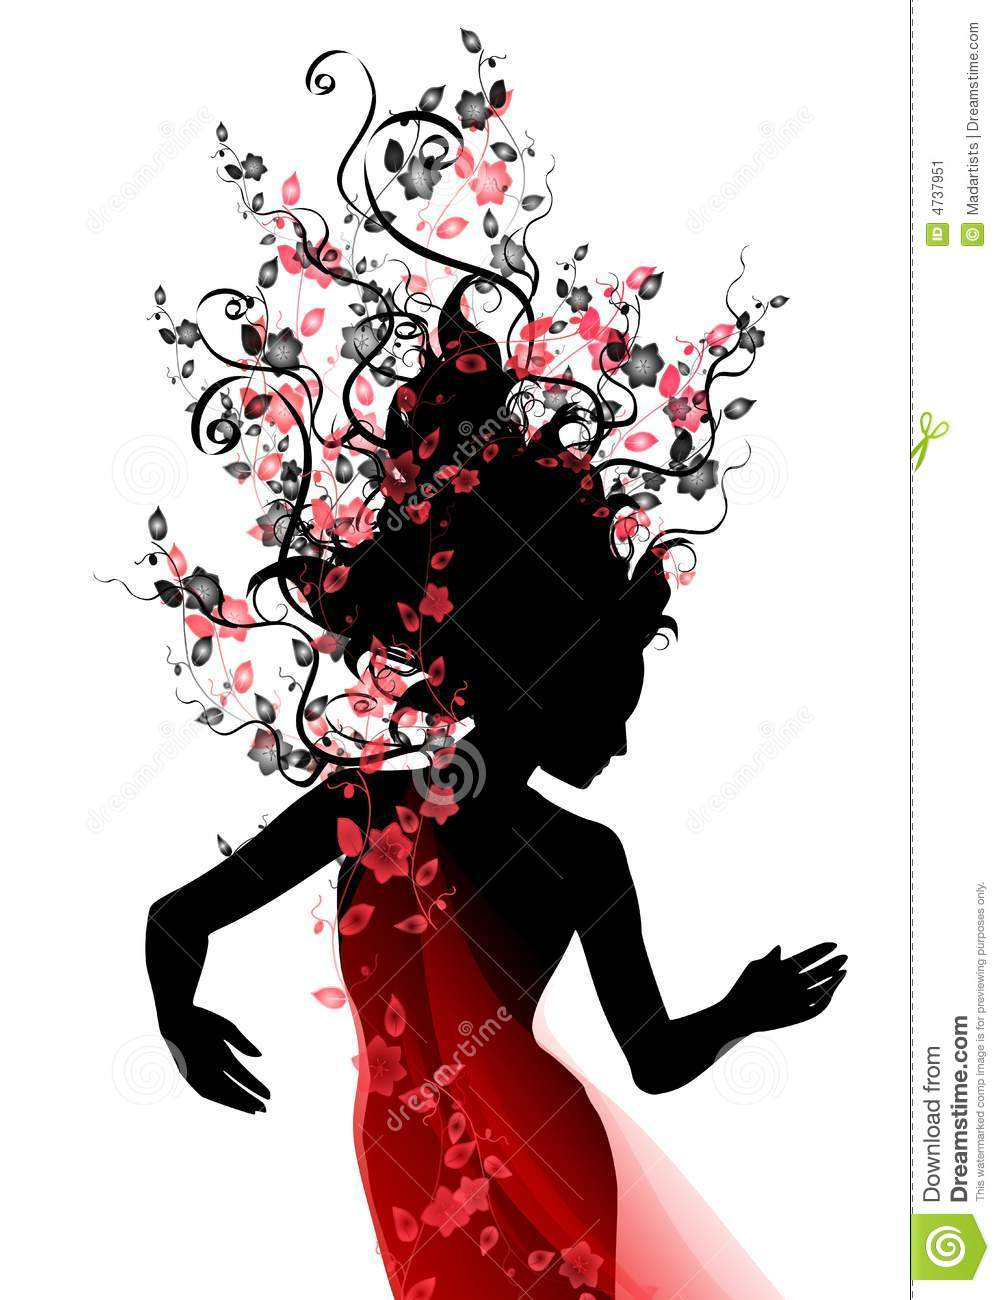 An illustration featuring the silhouette of a woman with long flowing ...